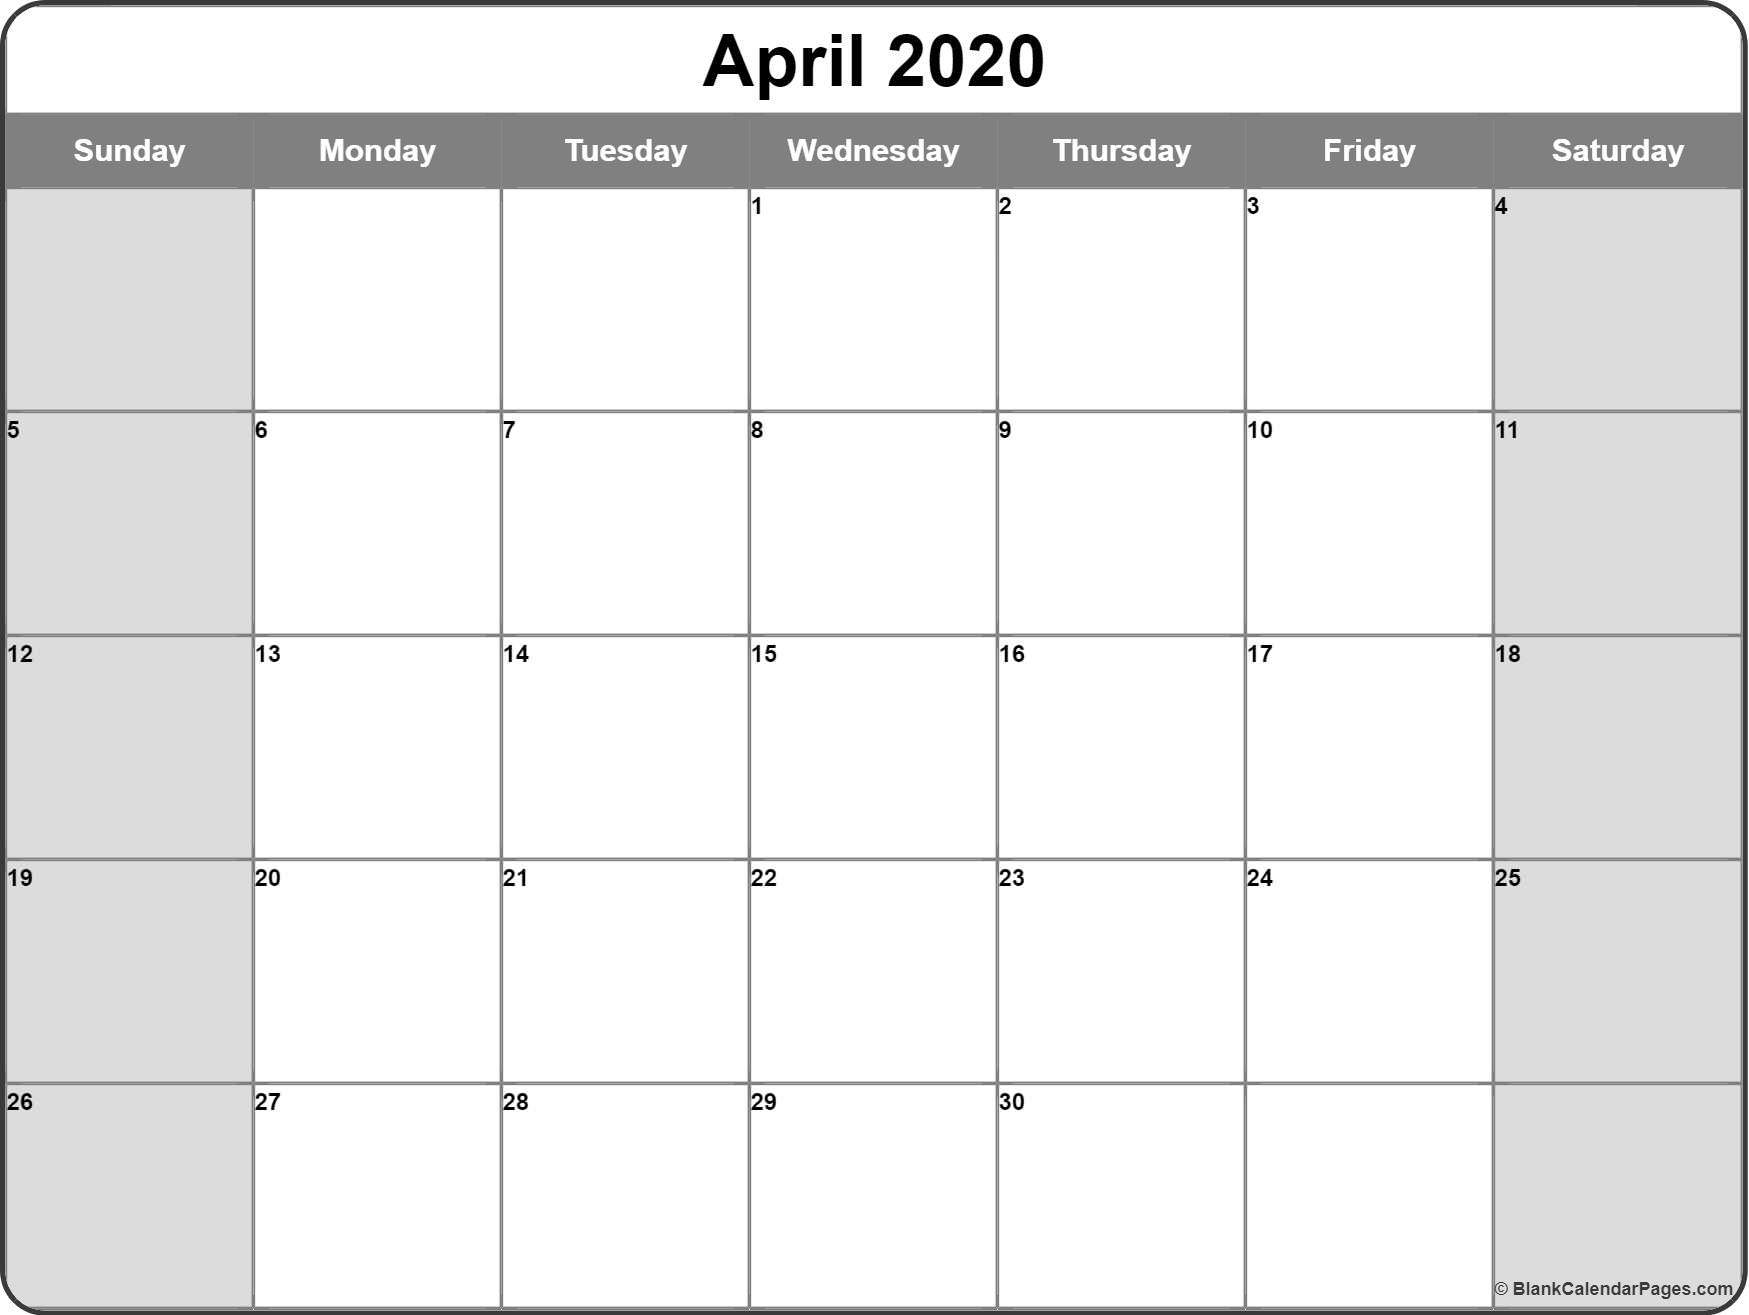 April 2020 Calendar | Free Printable Monthly Calendars in Printable Calendar 2020 Monthly With Holidays